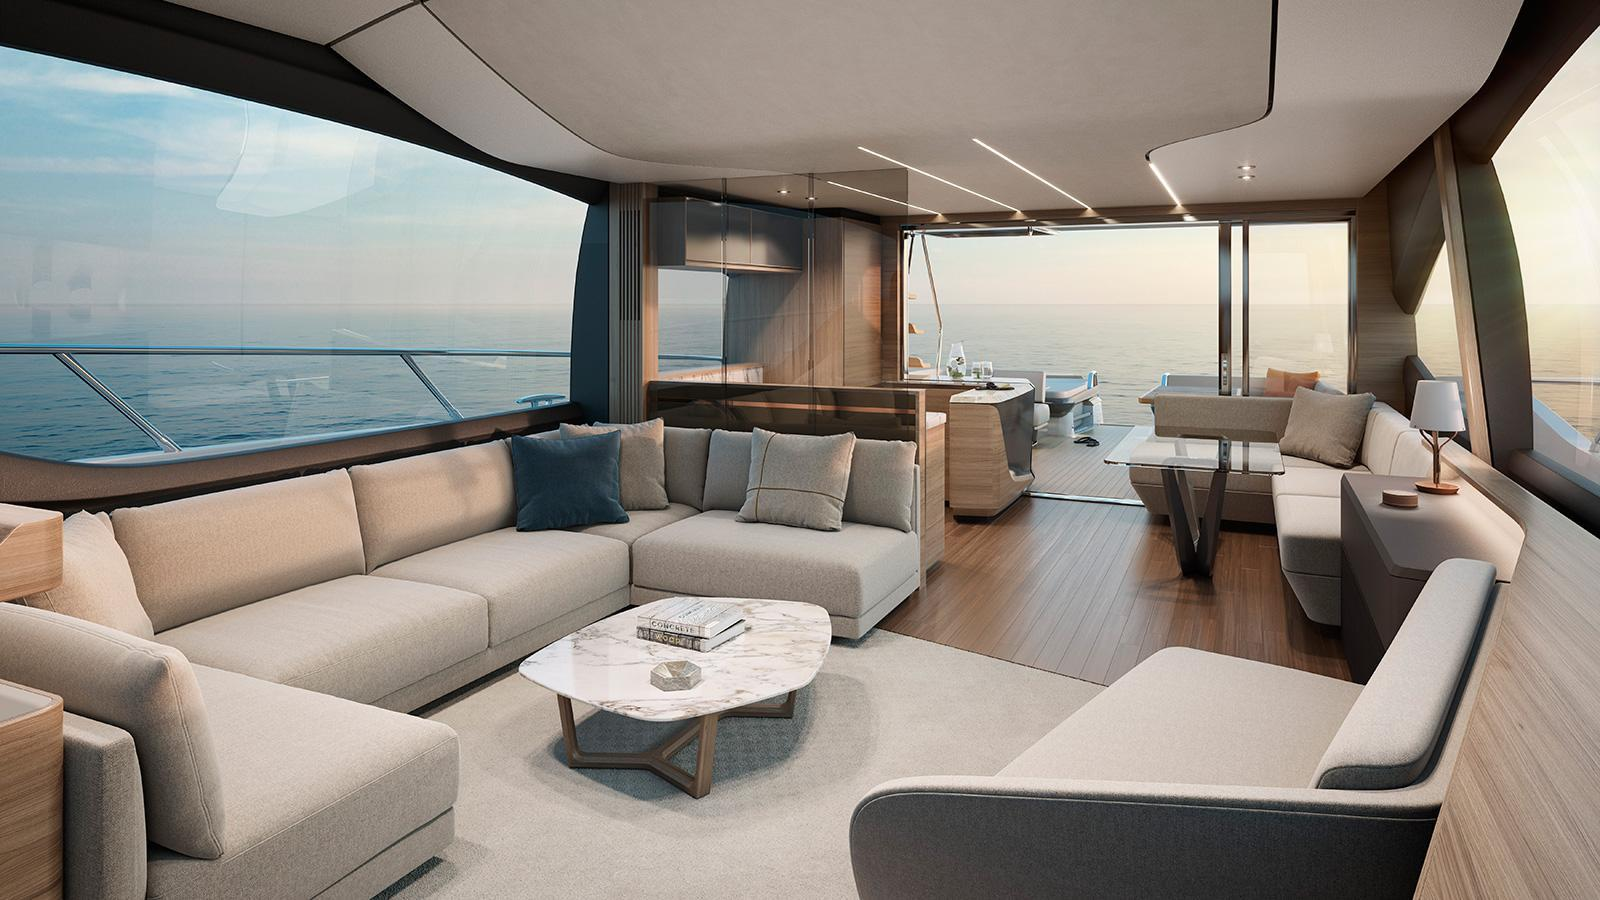 Princess S78 motoryacht Princess 24m 2019 saloon sistership